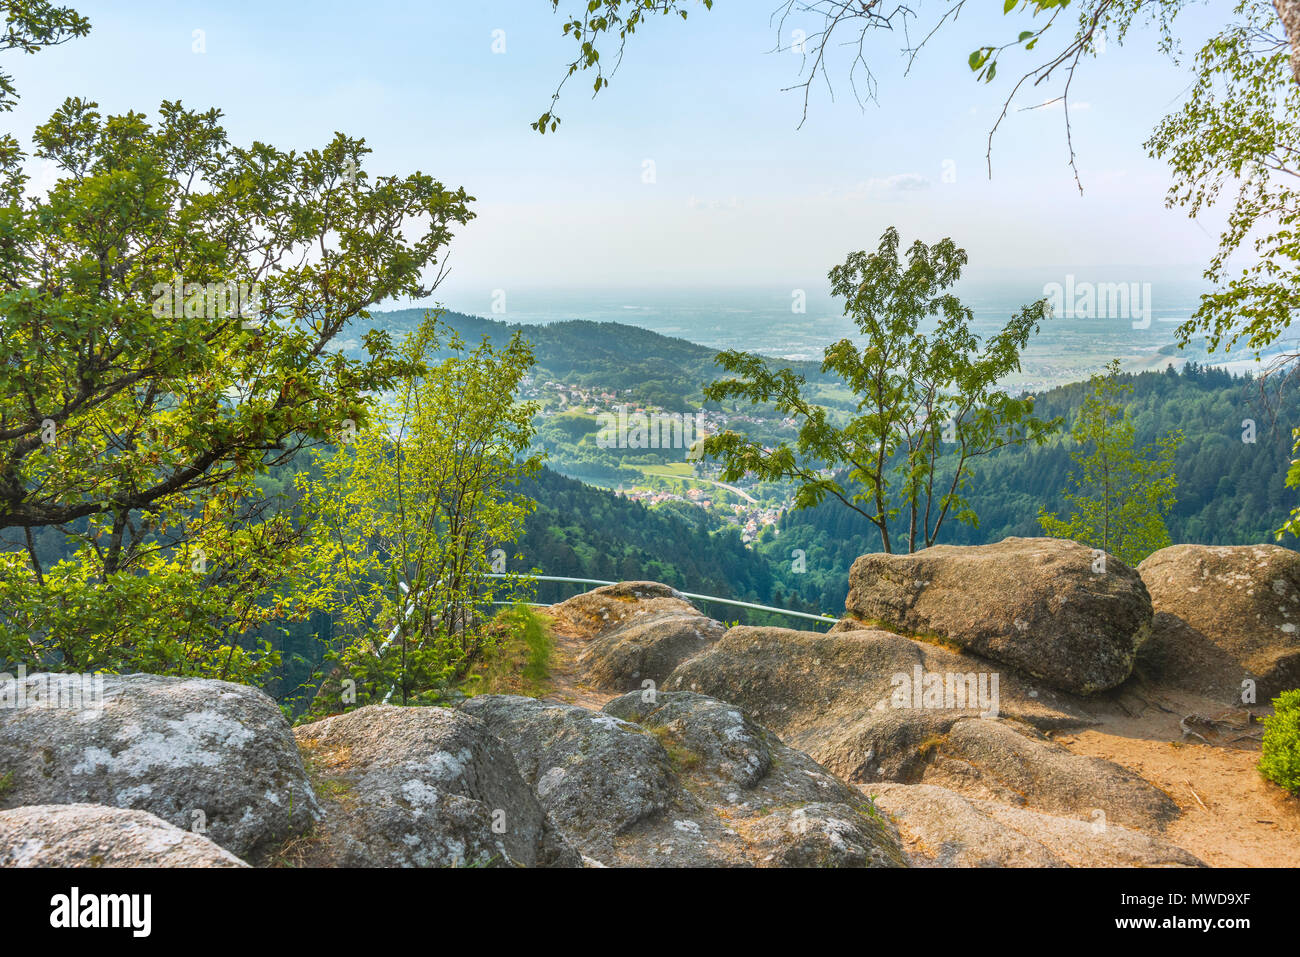 viewpoint Wiedenfelsen at the border of the Black Forest, Germany, view to the foothills with village Bühlertal and to the Upper Rhine Plain - Stock Image